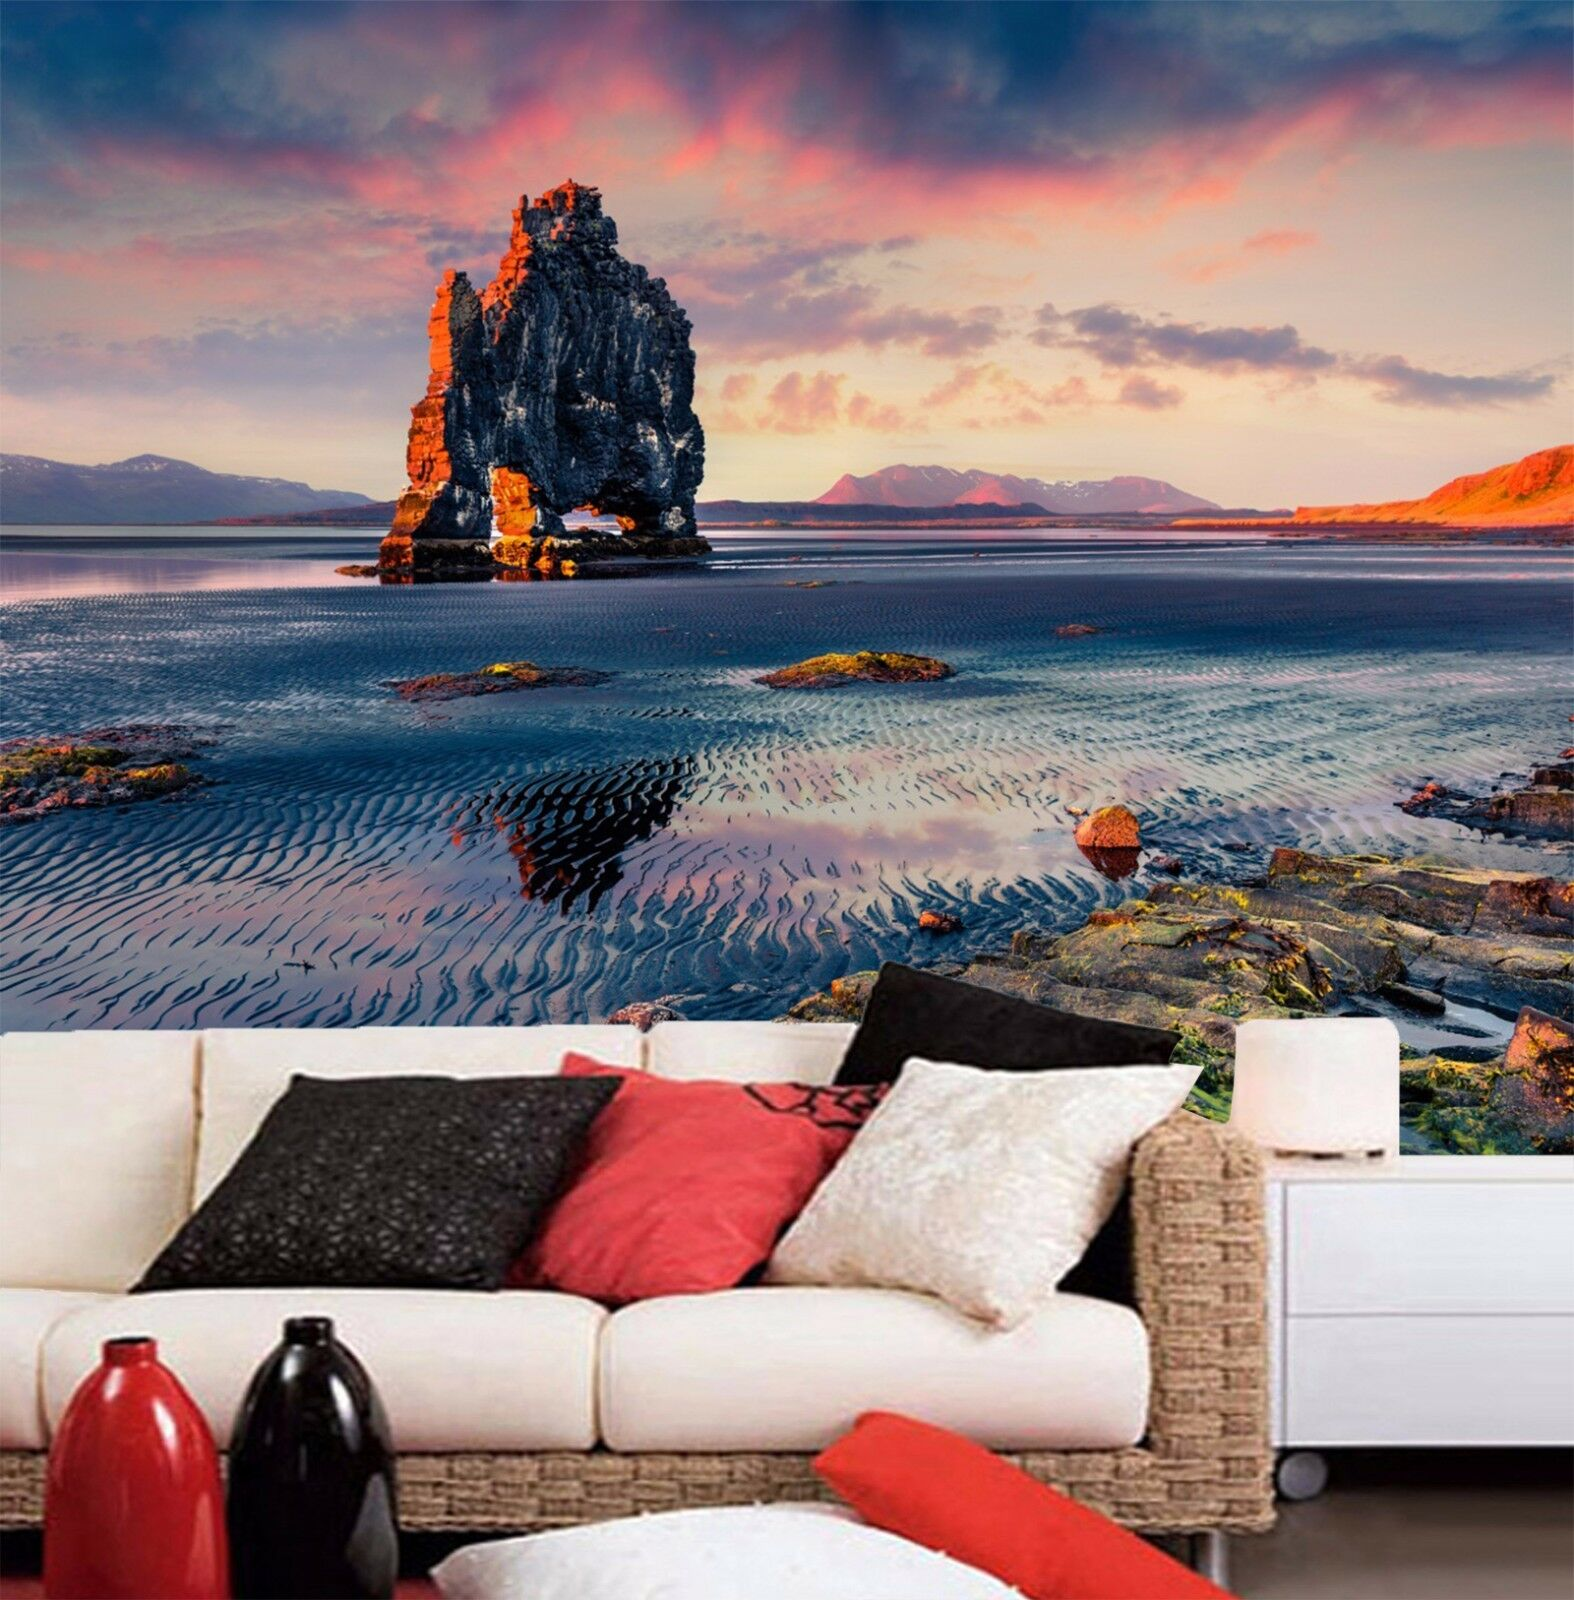 3D Hills Shadow 5 Wallpaper Murals Wall Print Wallpaper Mural AJ WALL AU Lemon